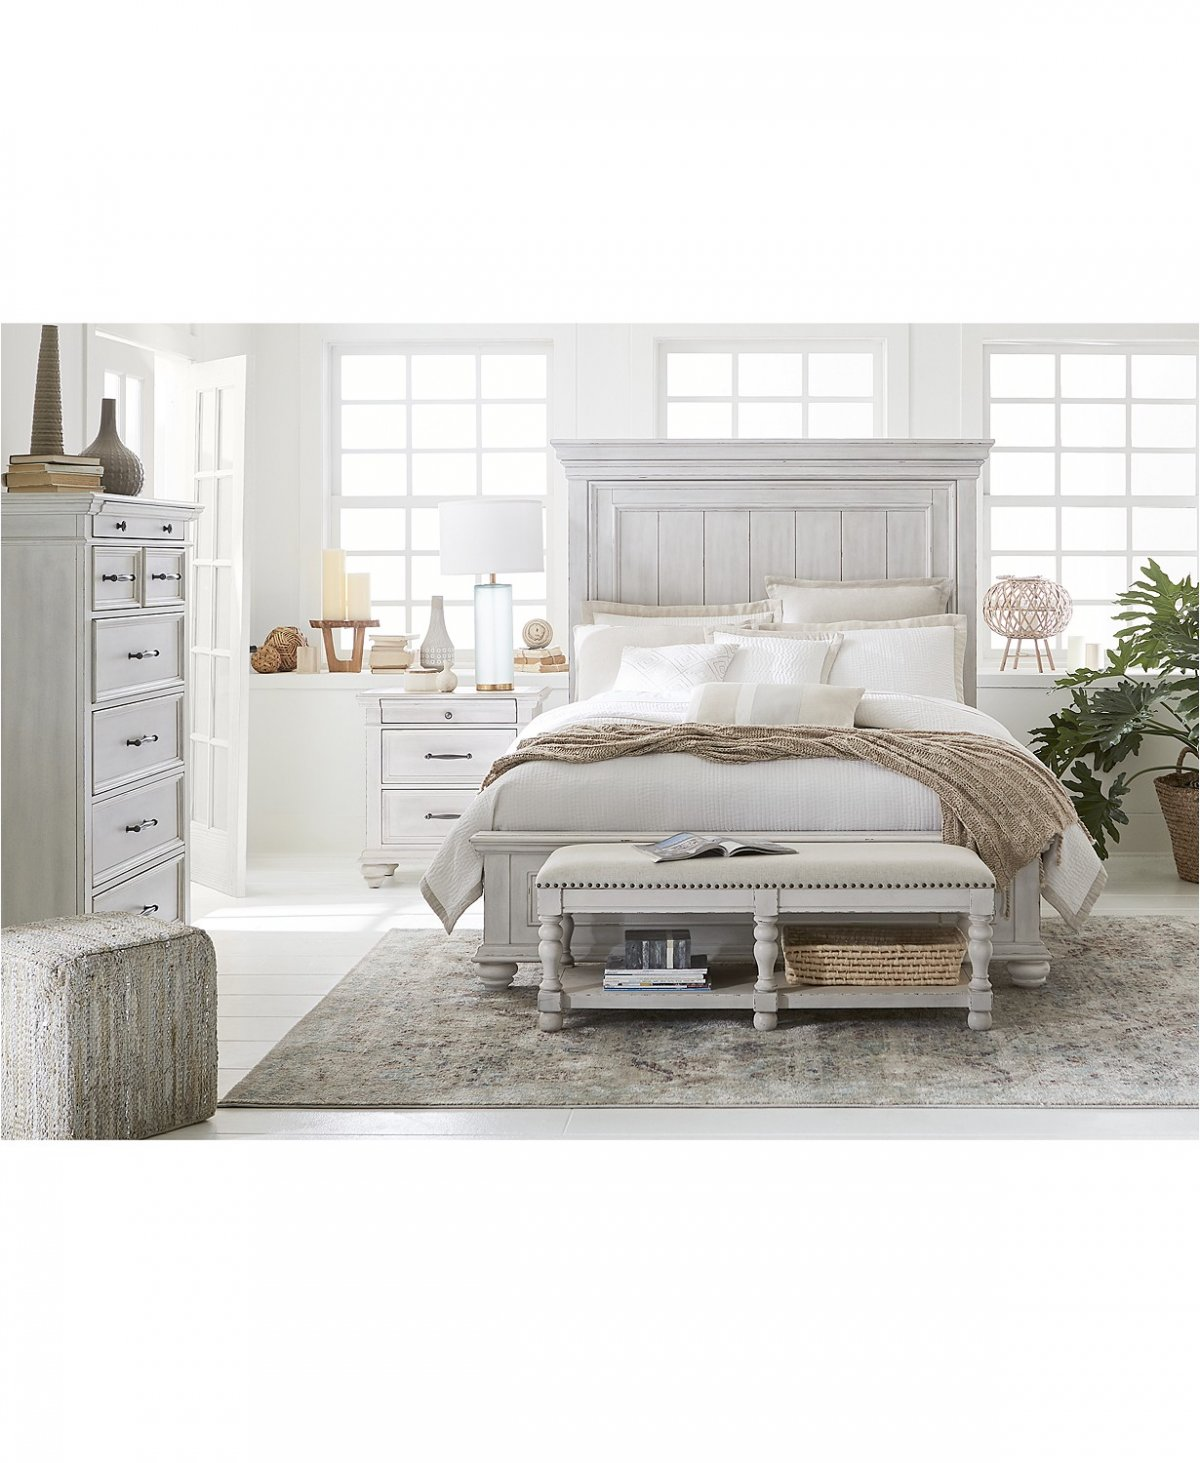 Queen 4 Pc Antique White Bedroom Set